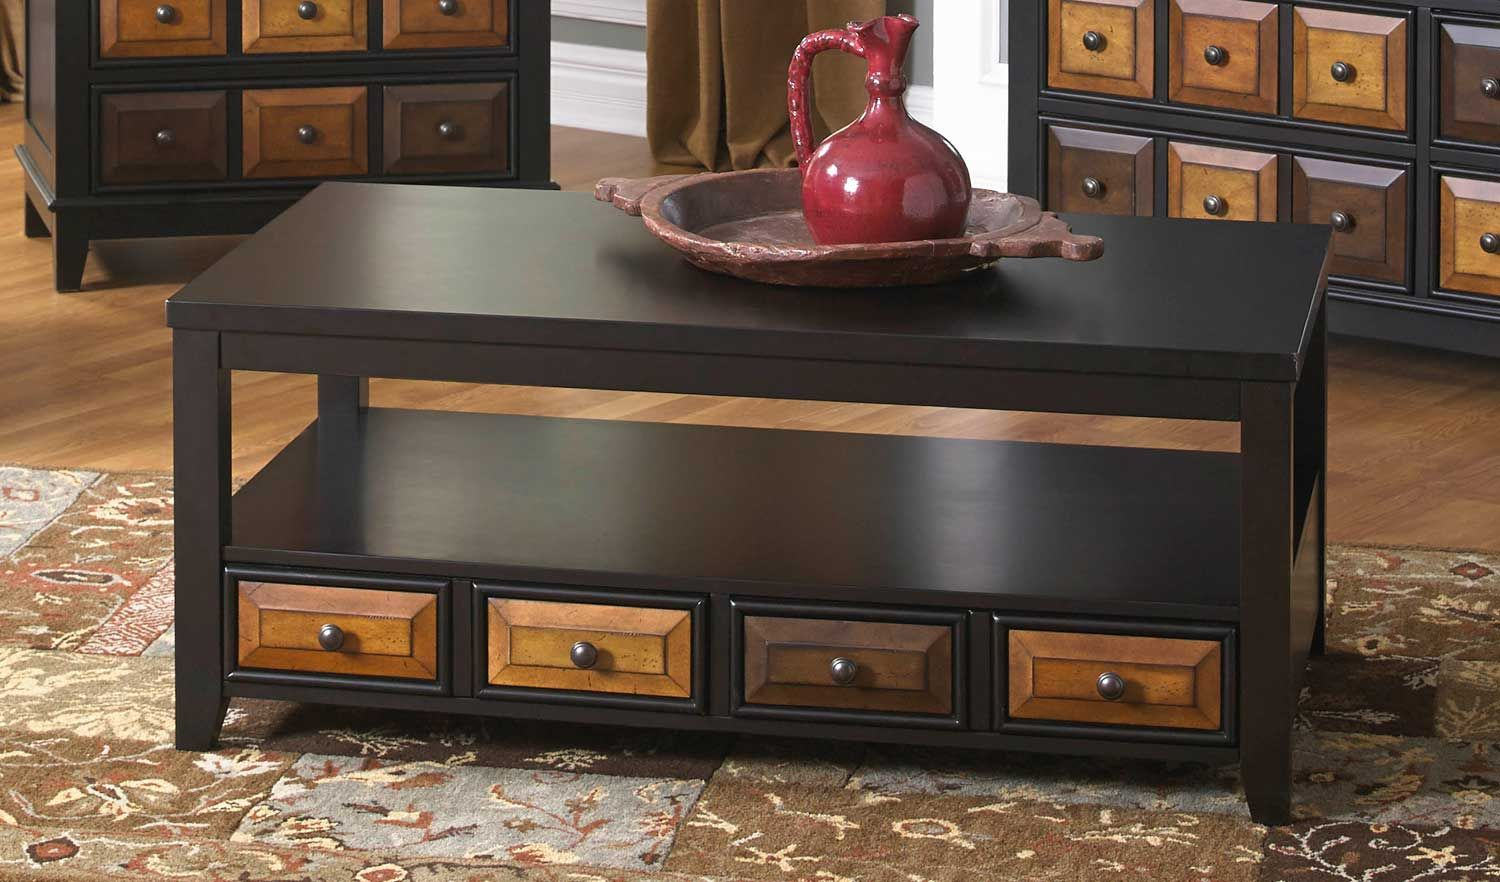 Jackson 857 Series Cocktail Table With Apothecary Drawer Jf 857 40 At Homelement Com Jackson Furniture Furniture Living Room Furniture [ 882 x 1500 Pixel ]